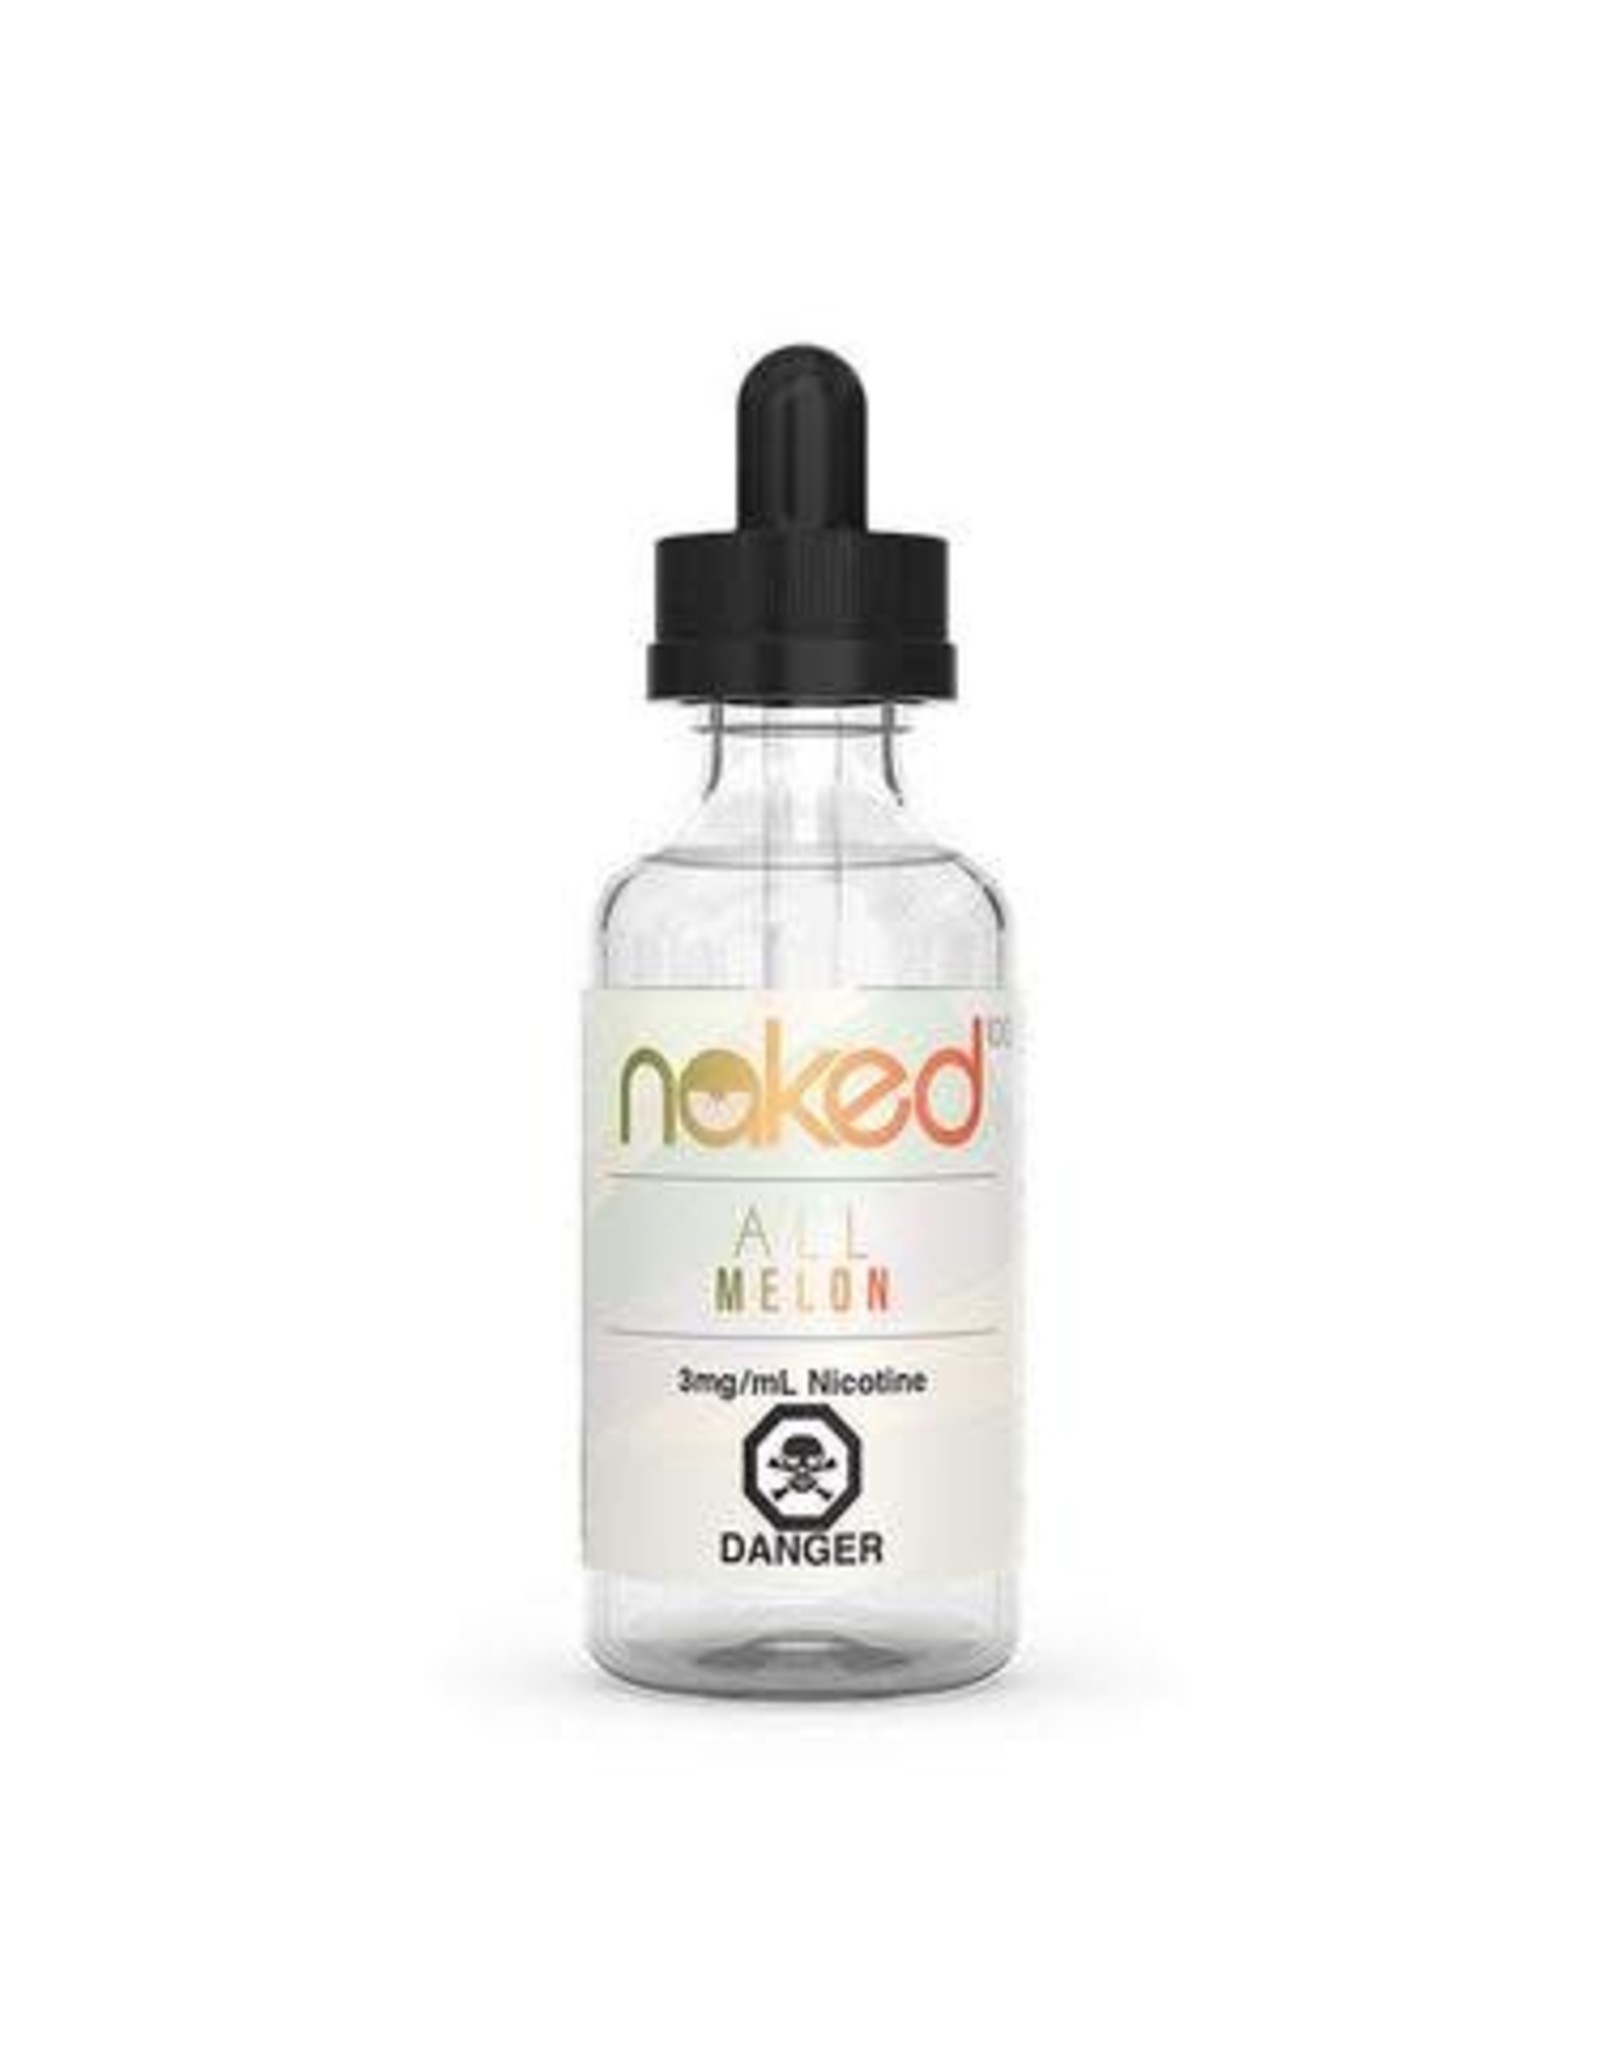 ALL MELON BY NAKED100(60ml)